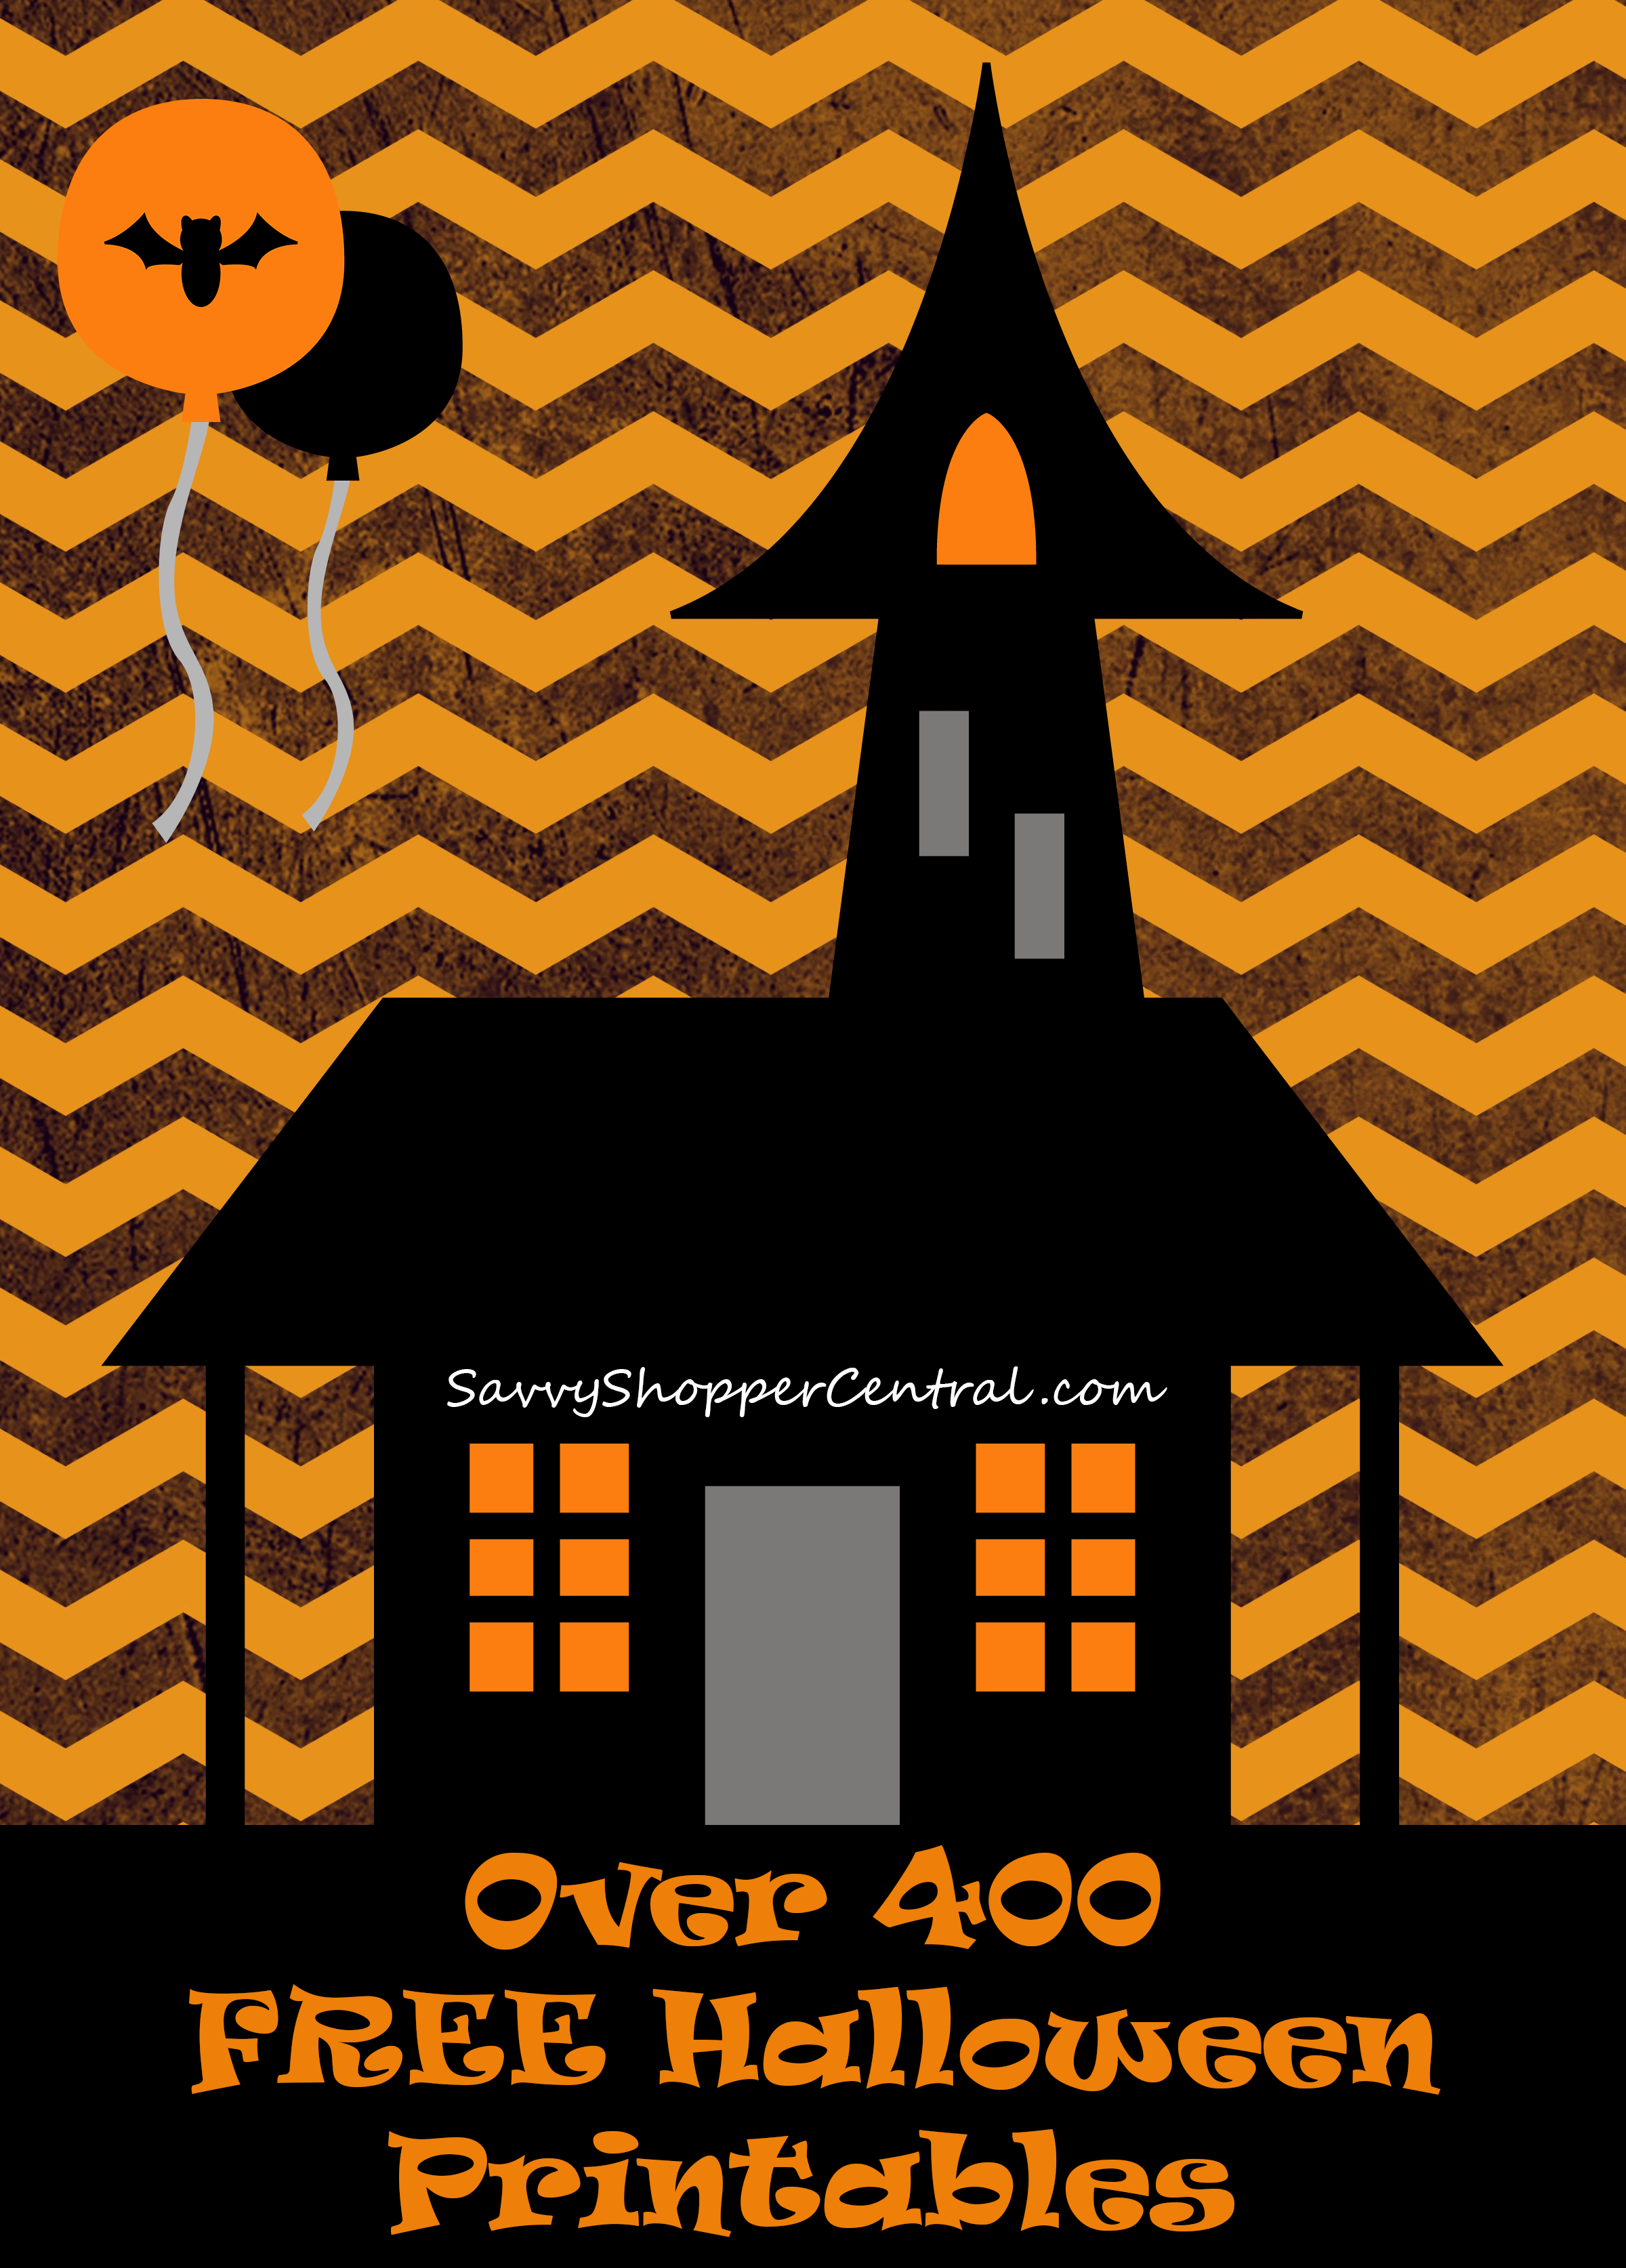 Over 400 Free Halloween Printables